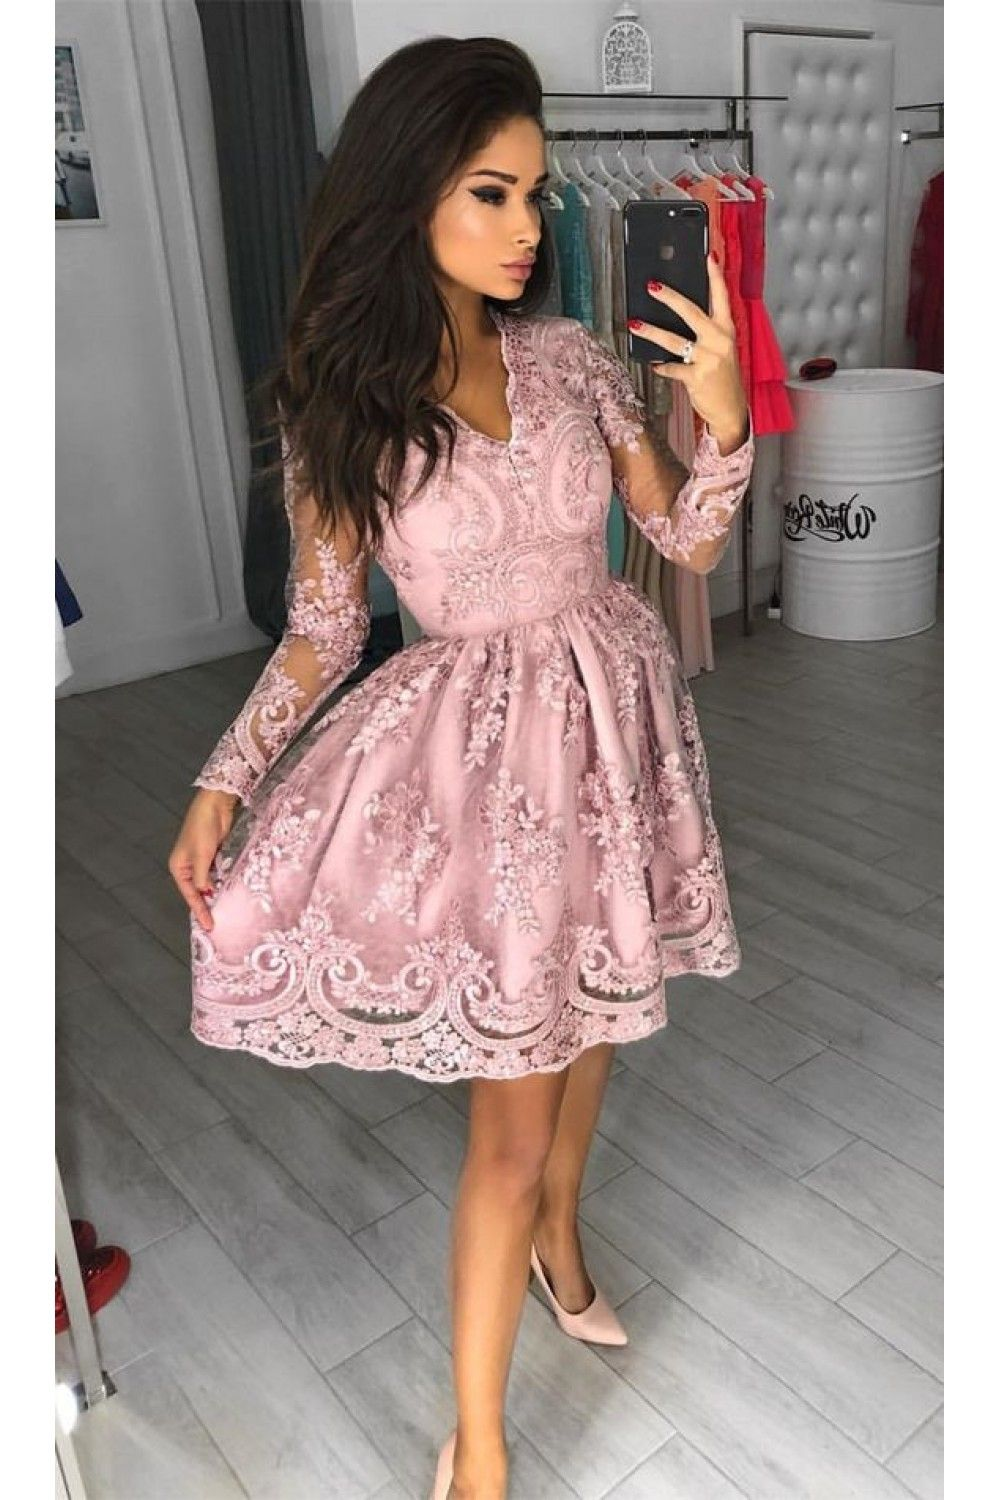 Short Prom Dress Long Sleeves Homecoming Dresses Graduation Party Dresses 701017 Prom Dresses For Teens Pink Homecoming Dress Prom Dresses Long With Sleeves [ 1500 x 1000 Pixel ]